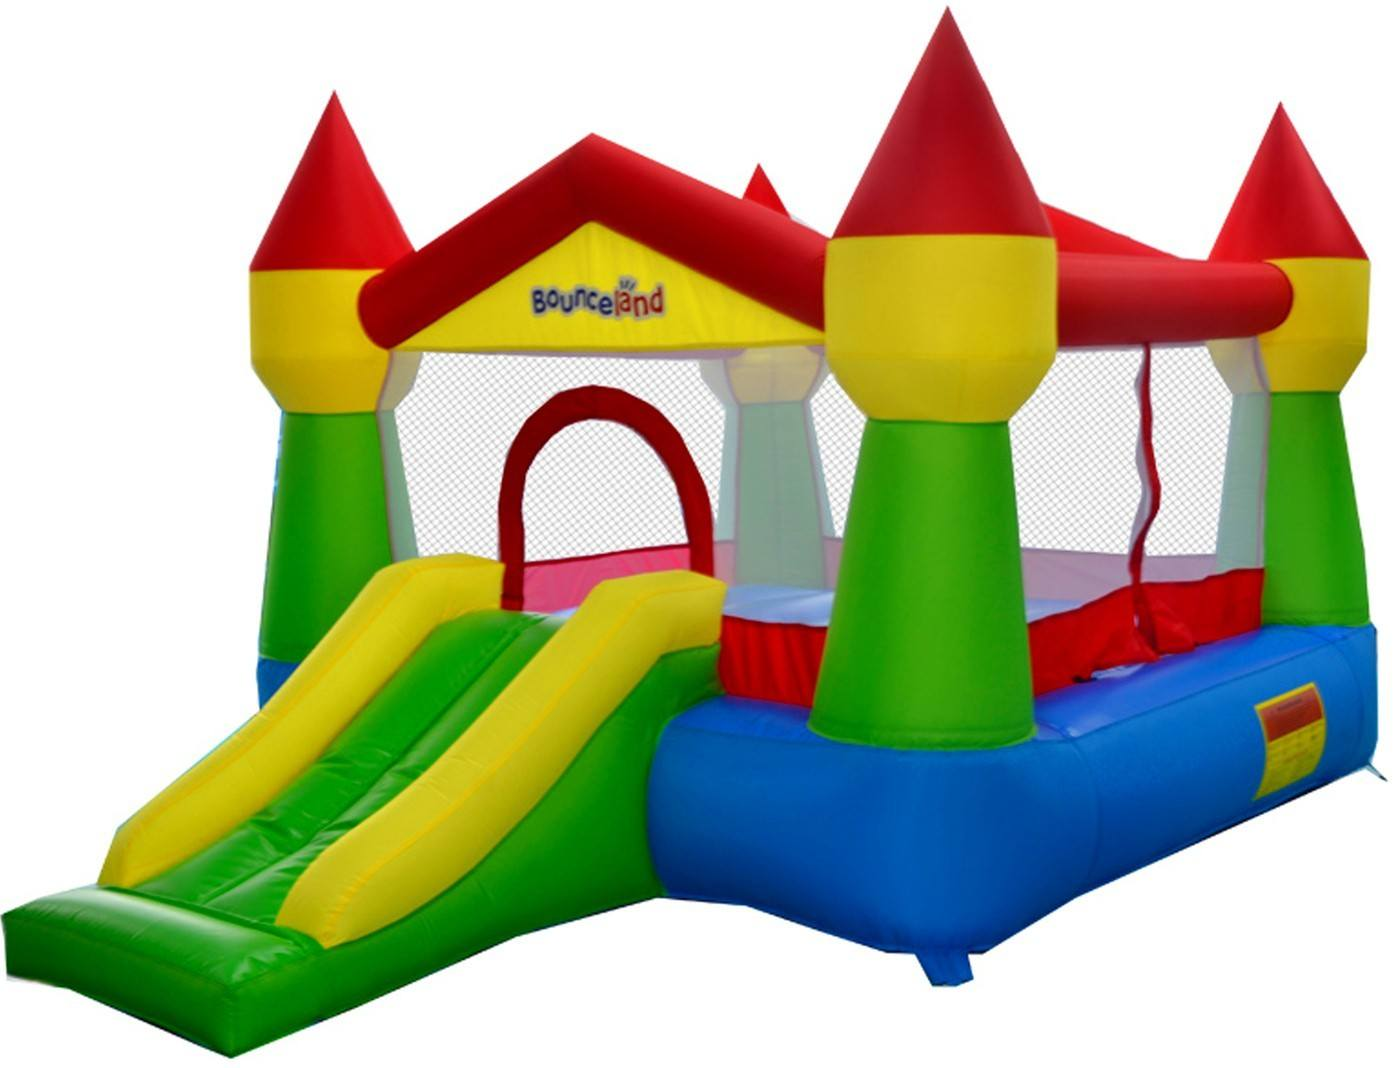 the magic castle inflatable bounce house has great reviews and is perfect for families on a budget